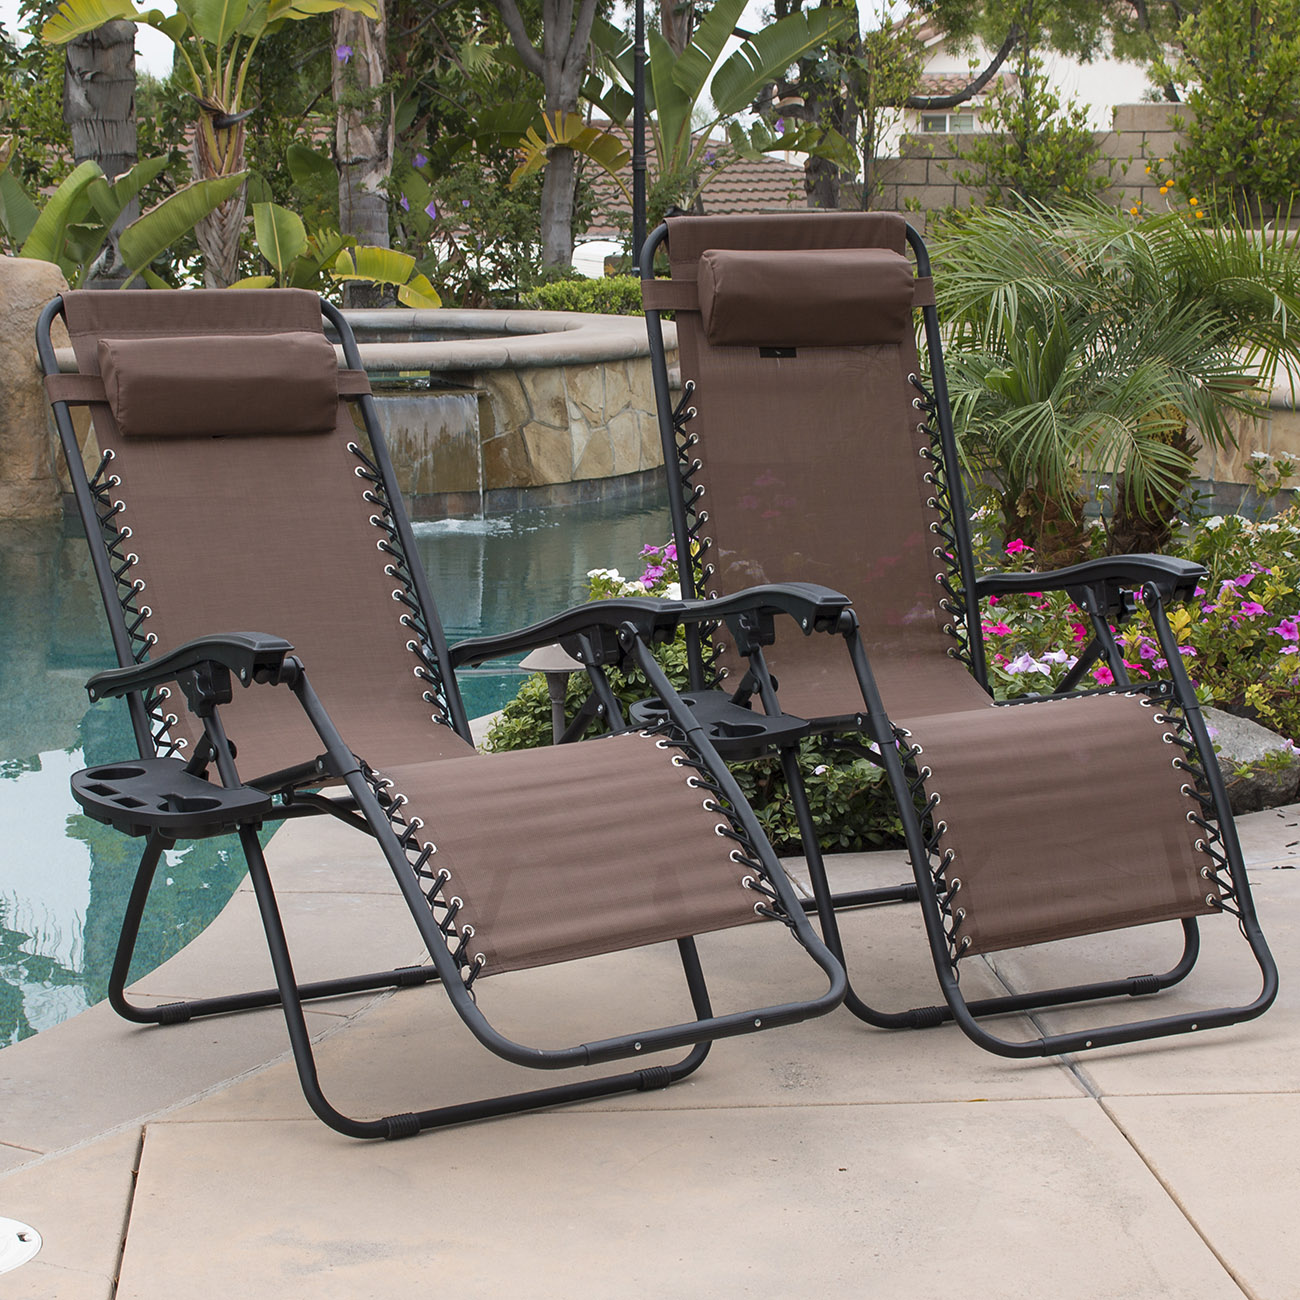 cup holder tray for zero gravity chair hip surgery belleze 2 pack chairs patio lounge foldable utility brown walmart com